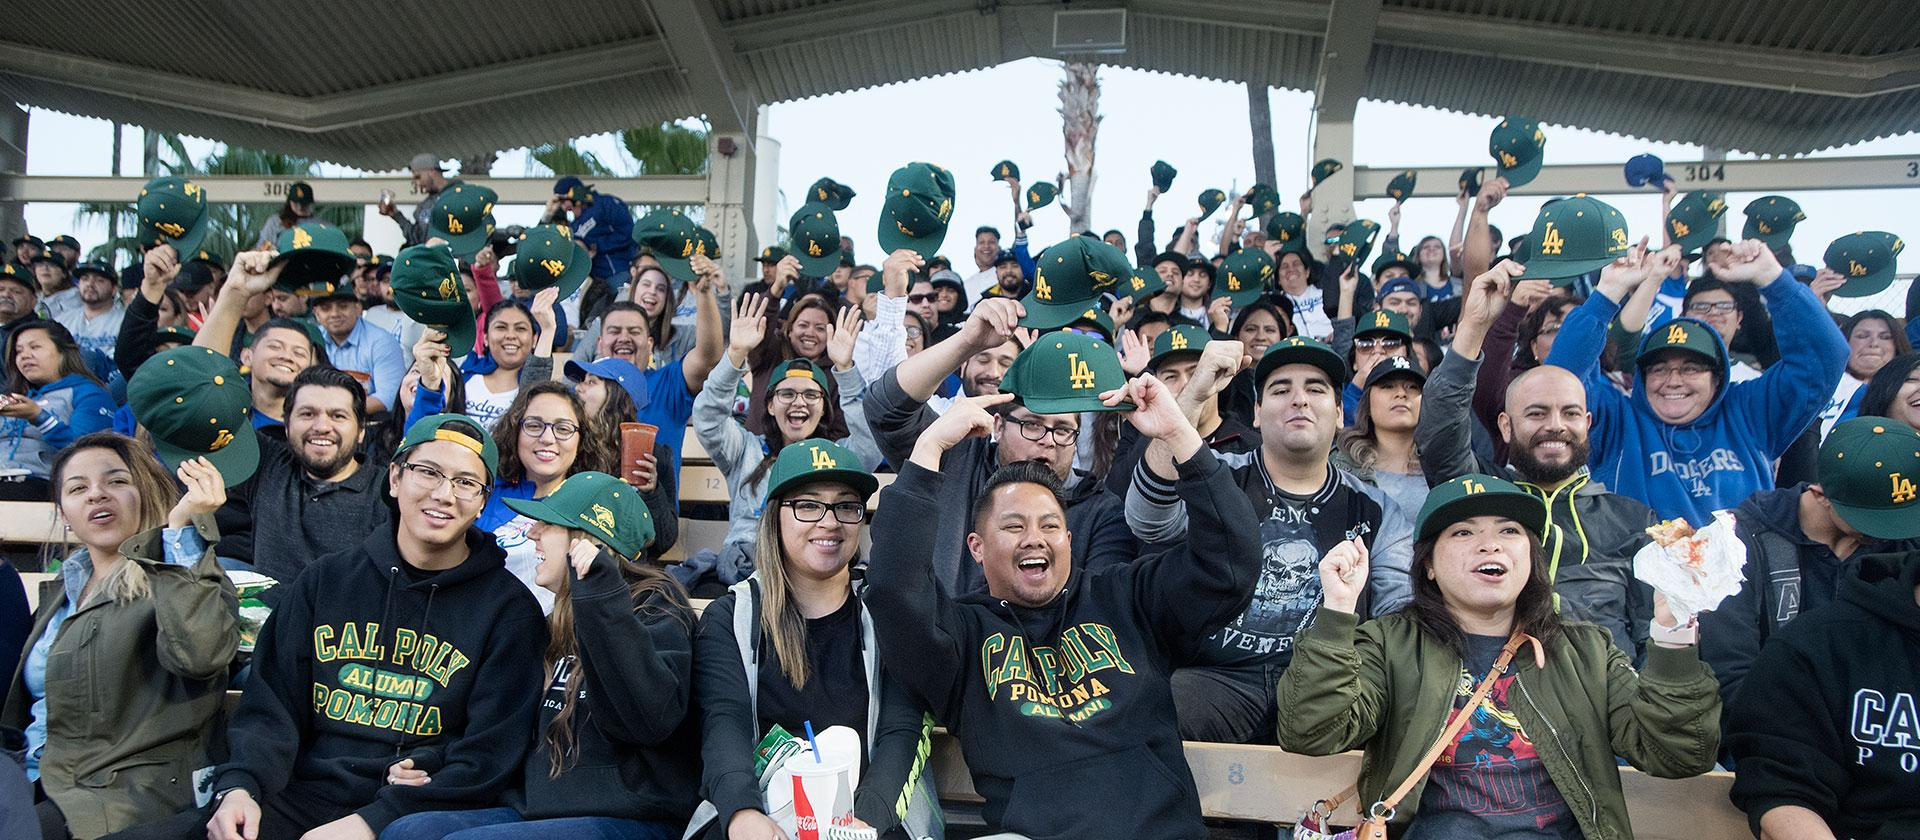 Cal Poly Pomona alumni, faculty and staff at Dodgers Stadium.